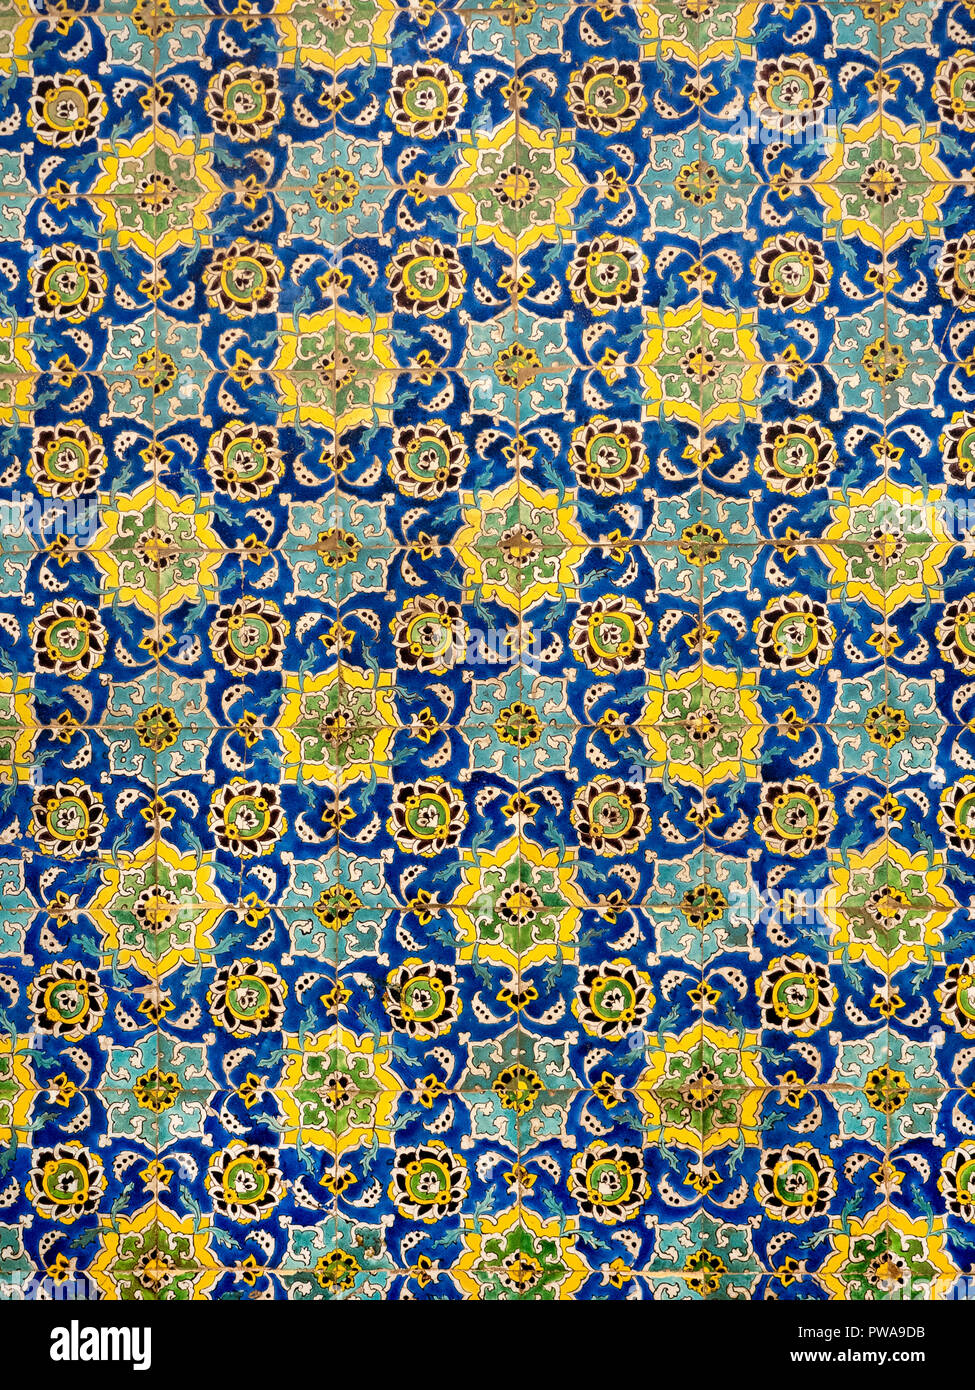 Floral pattern on tiles of Sheikh Lotfollah Mosque, Isfahan, Iran - Stock Image